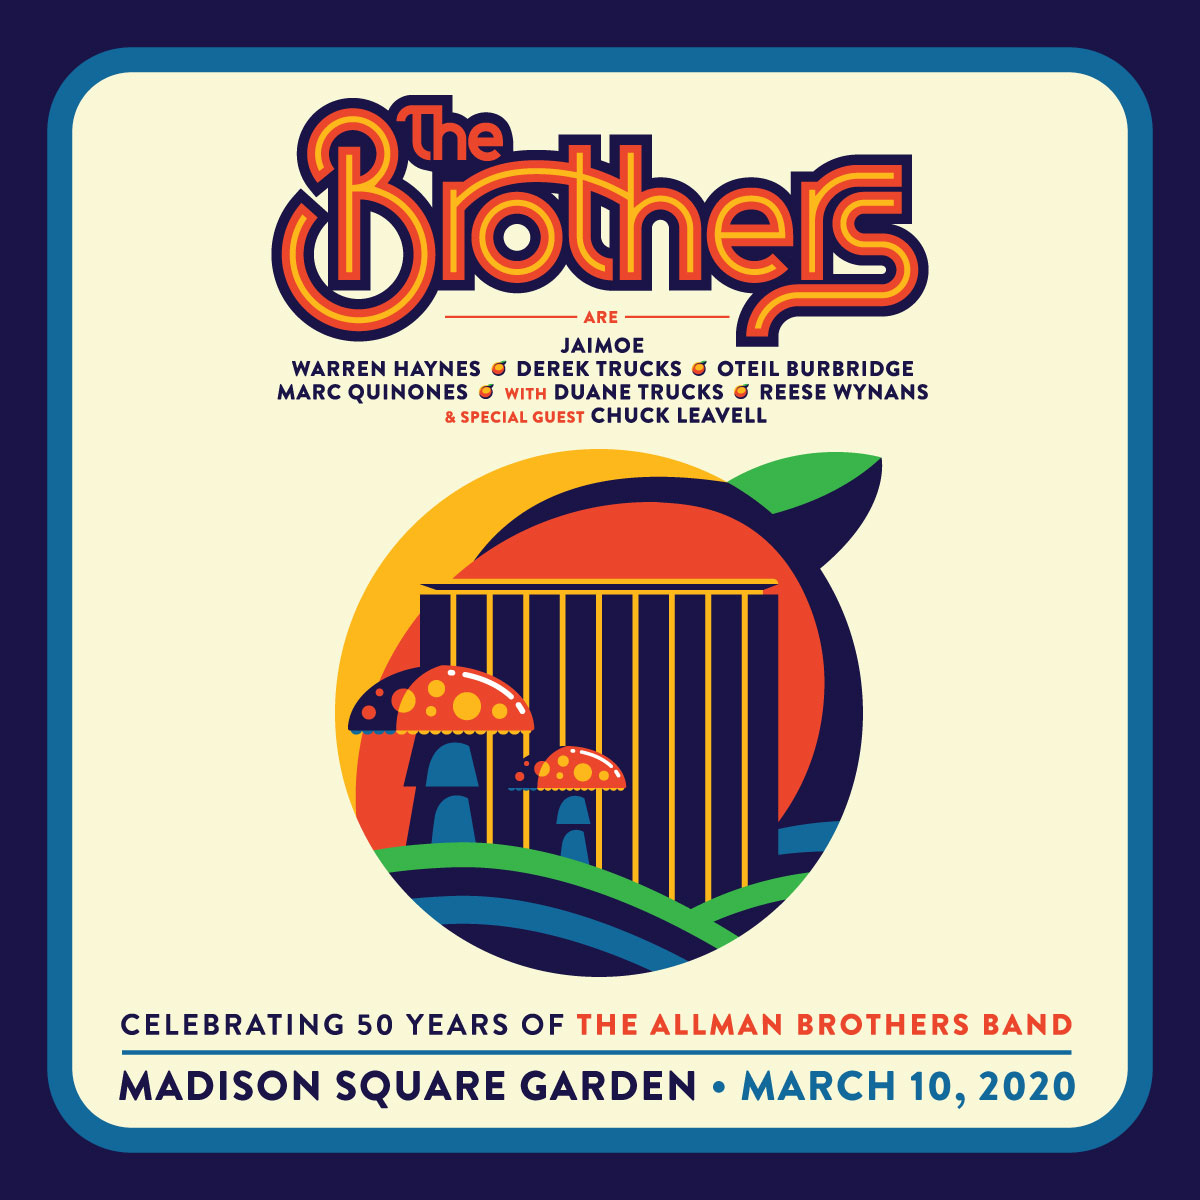 The Brothers - Madison Square Garden